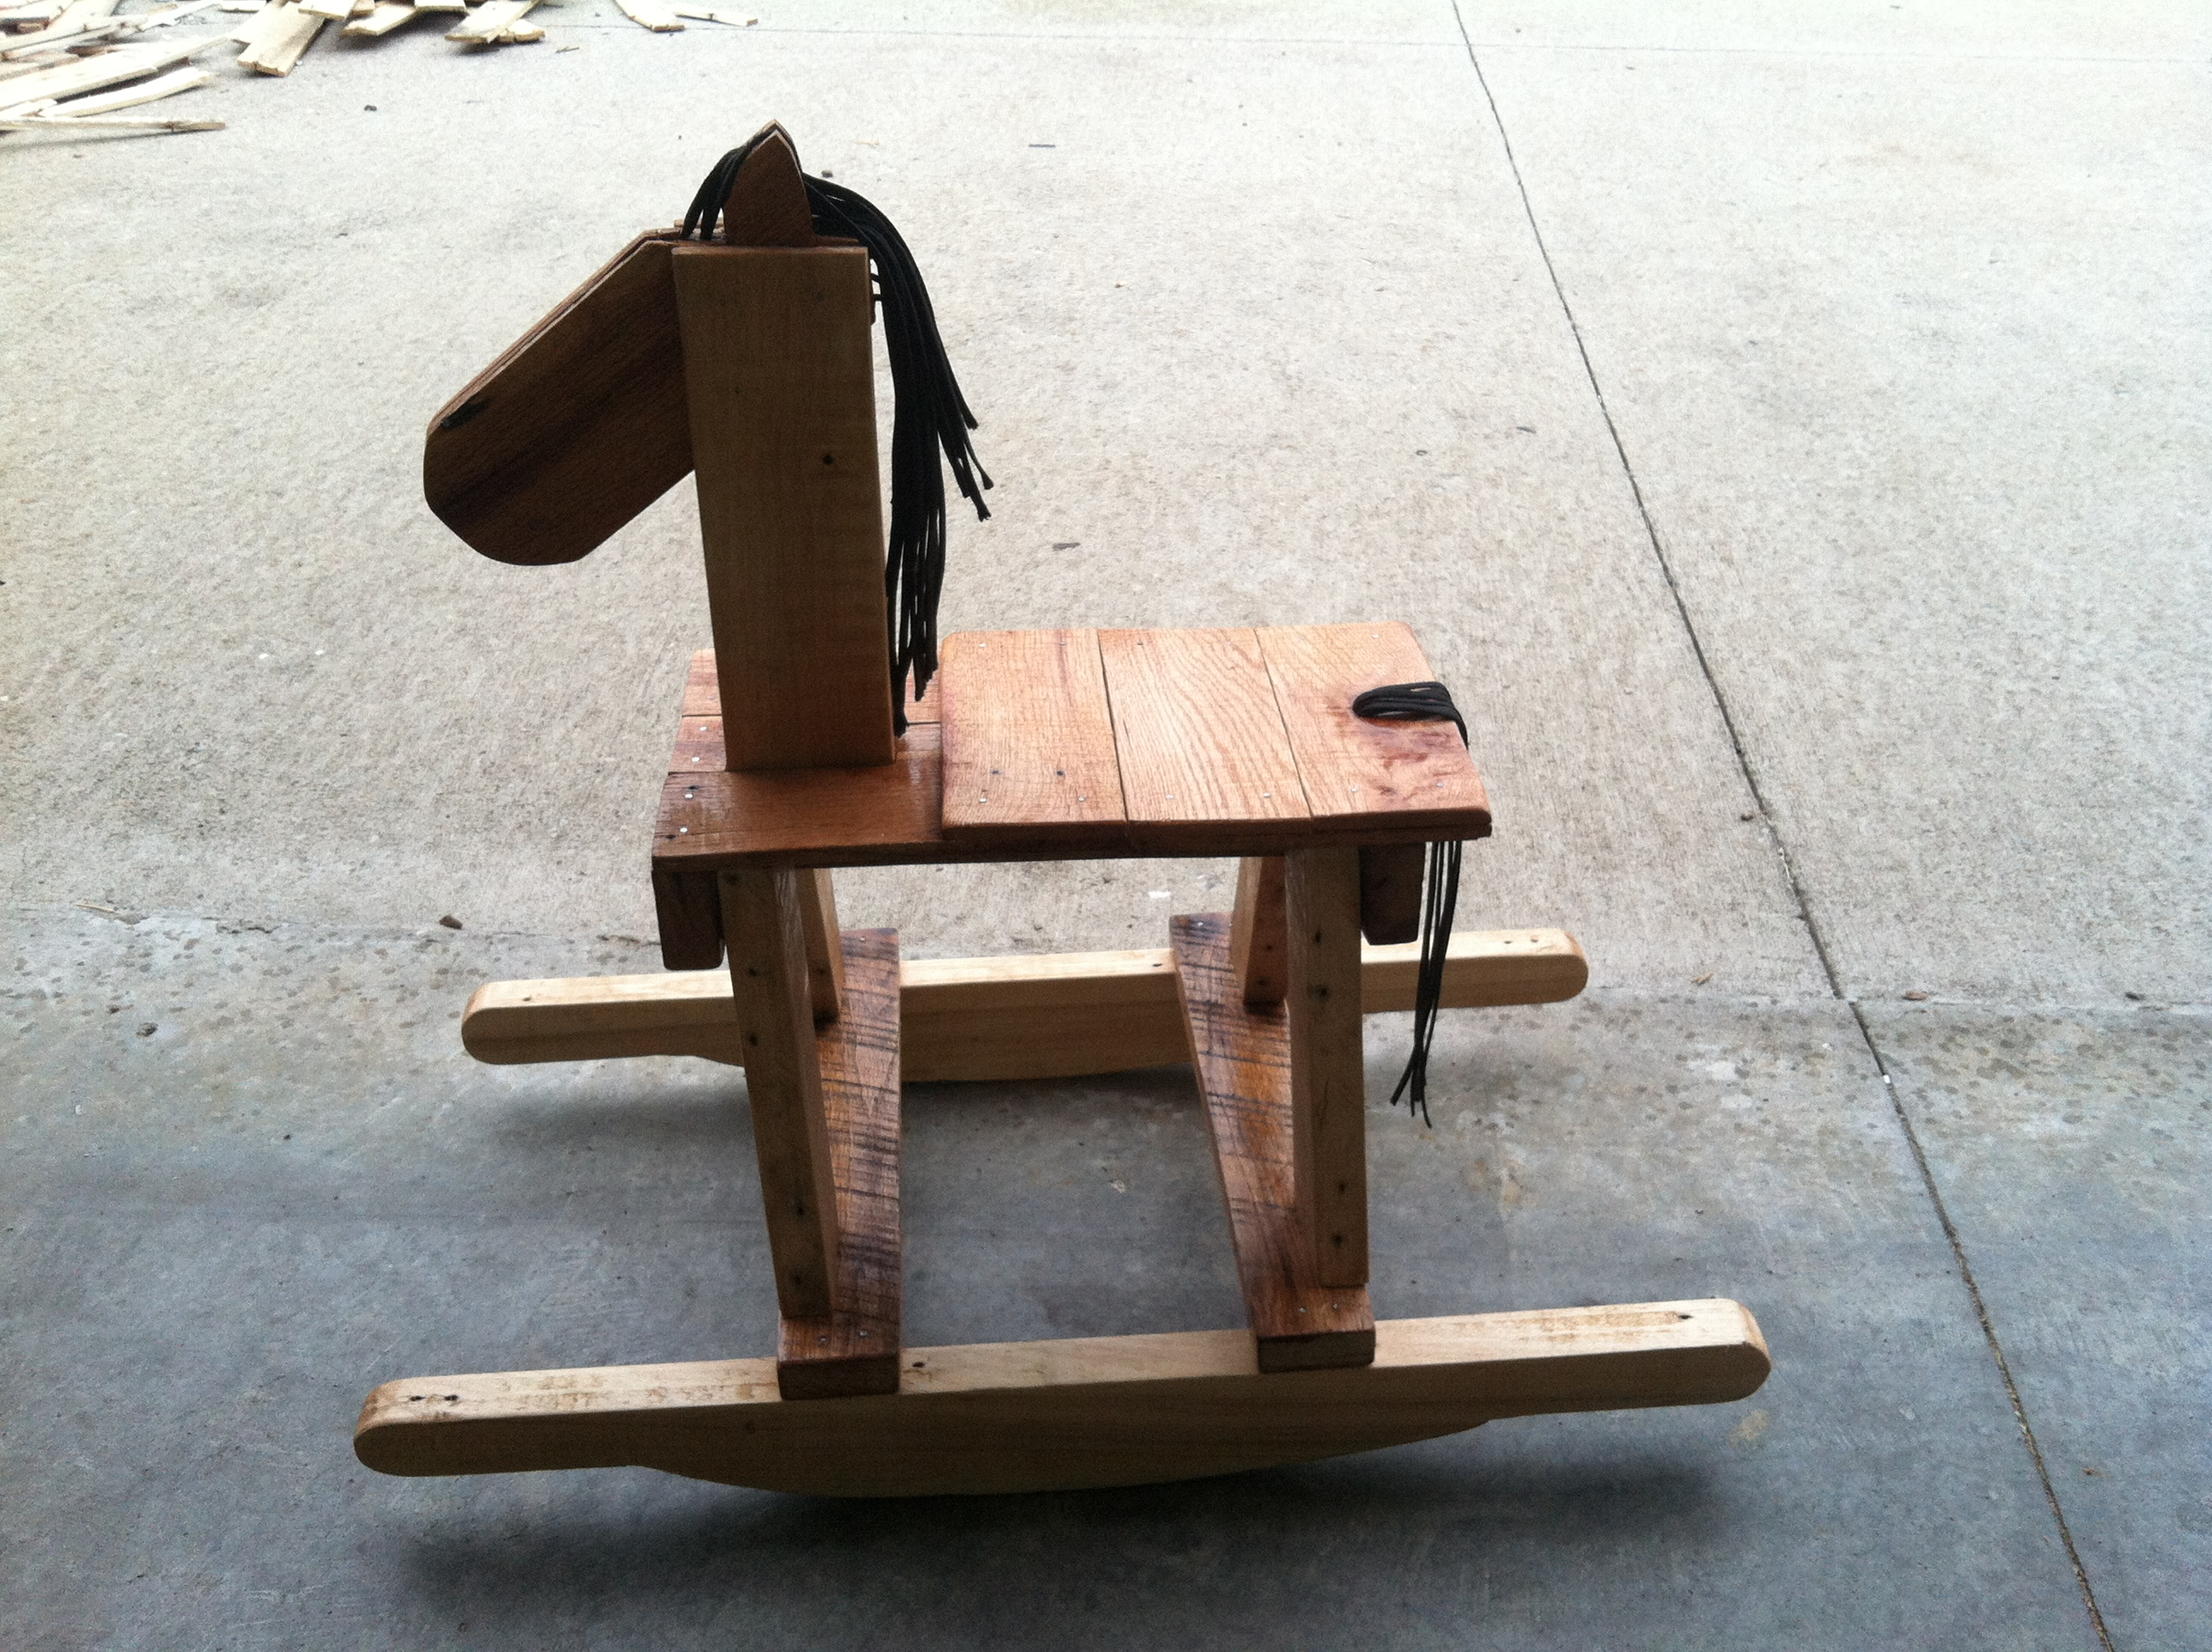 Picture of Rocking Horse Pallet Art:  How to Make Your Own Rustic Rocking Horse